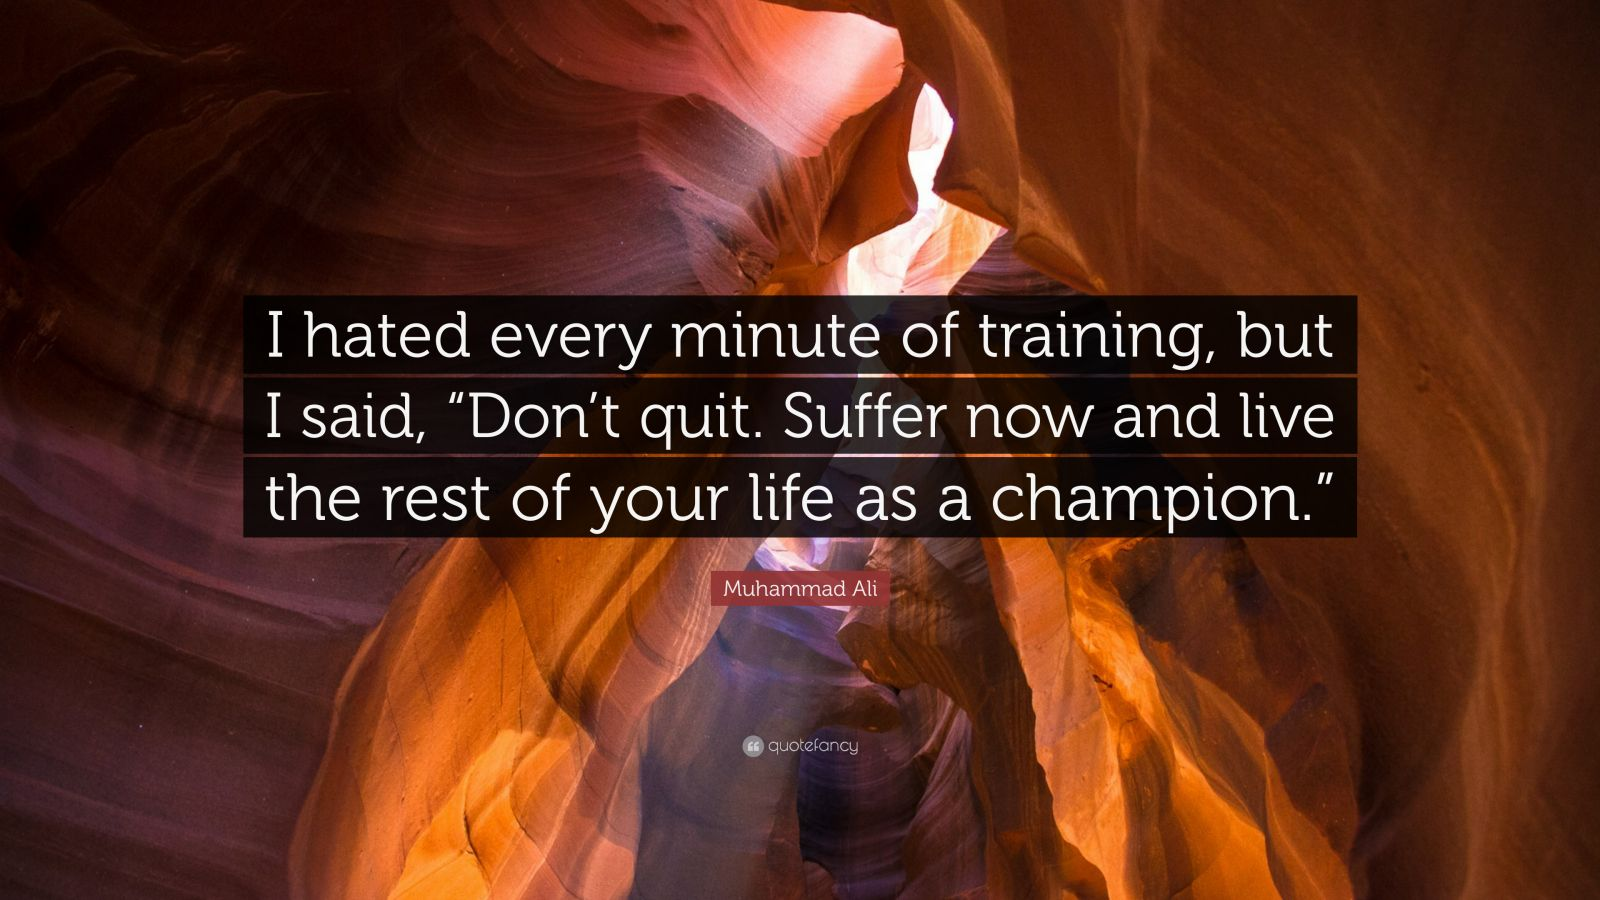 Source: Out Of Suffering Have Emerged The Quote